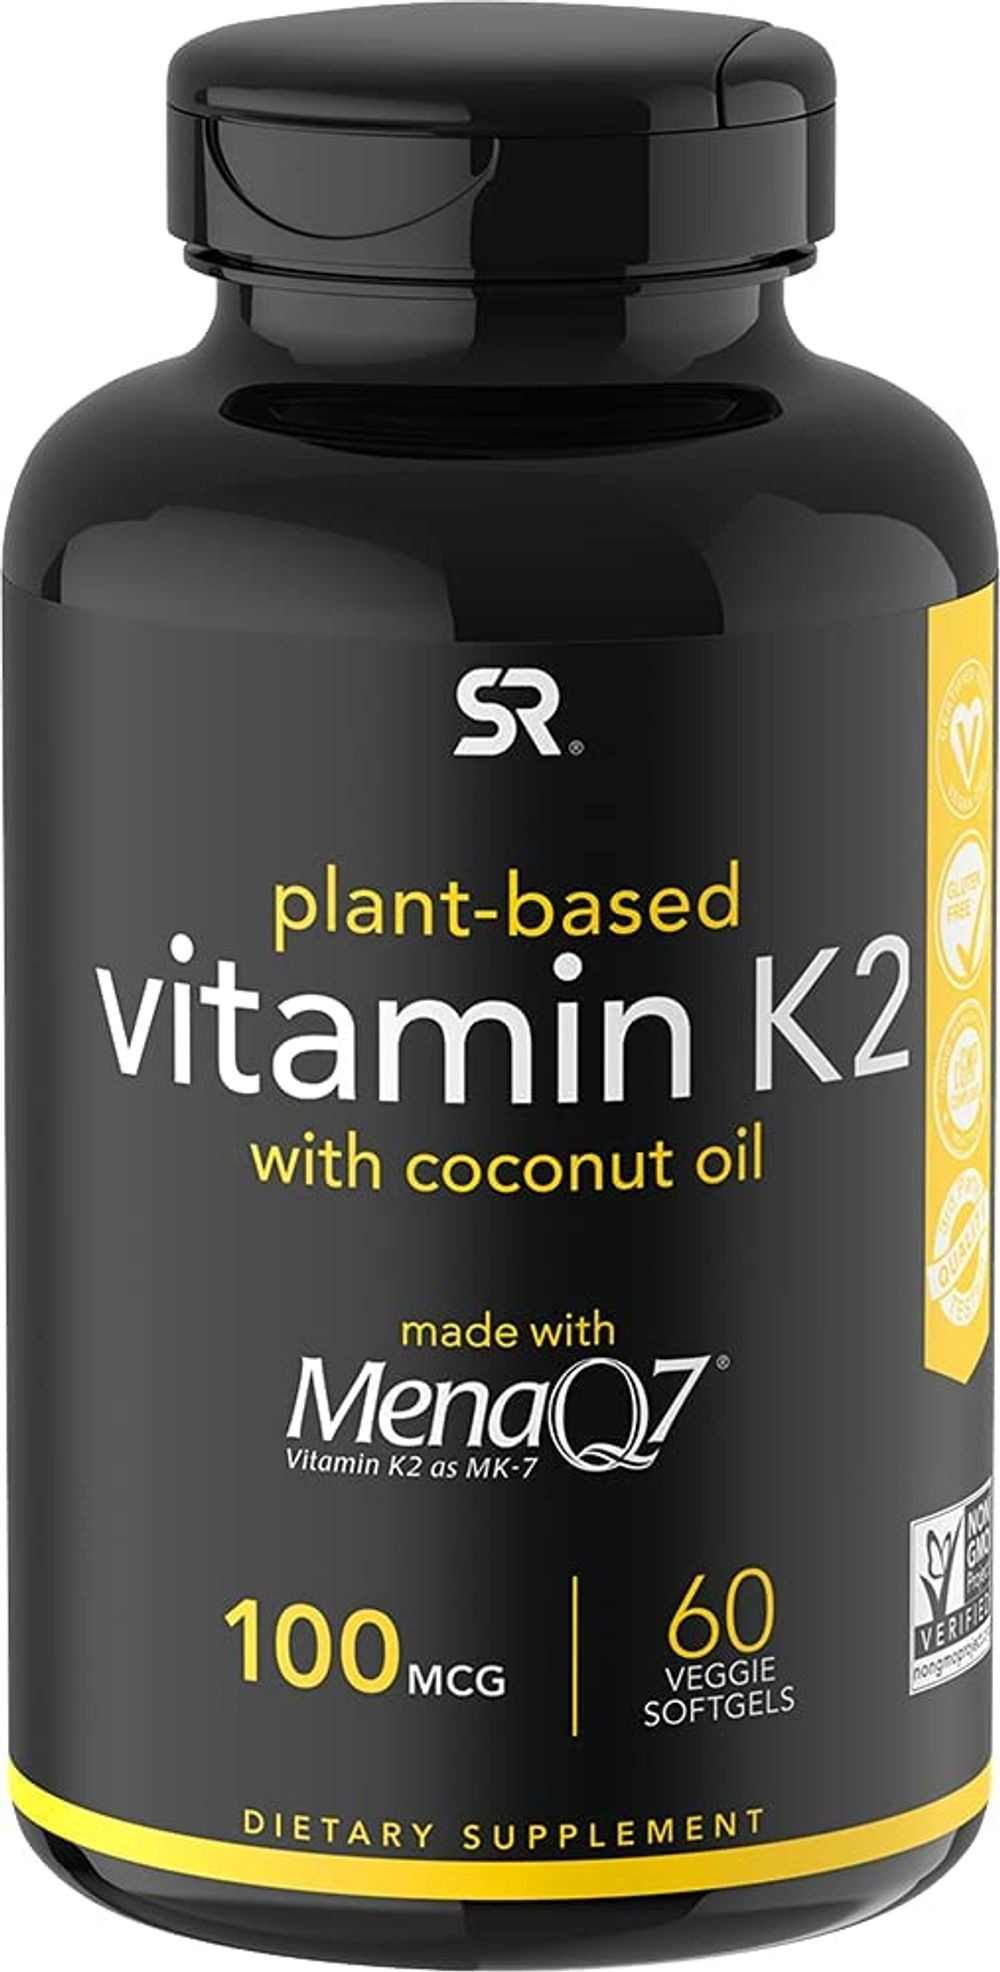 Vitamin K2 (as MK7) with Organic Coconut Oil   Made with MenaQ7 from Fermented Chickpea   Non-GMO Verified, Vegan Certified (60 Veggie-Softgels)